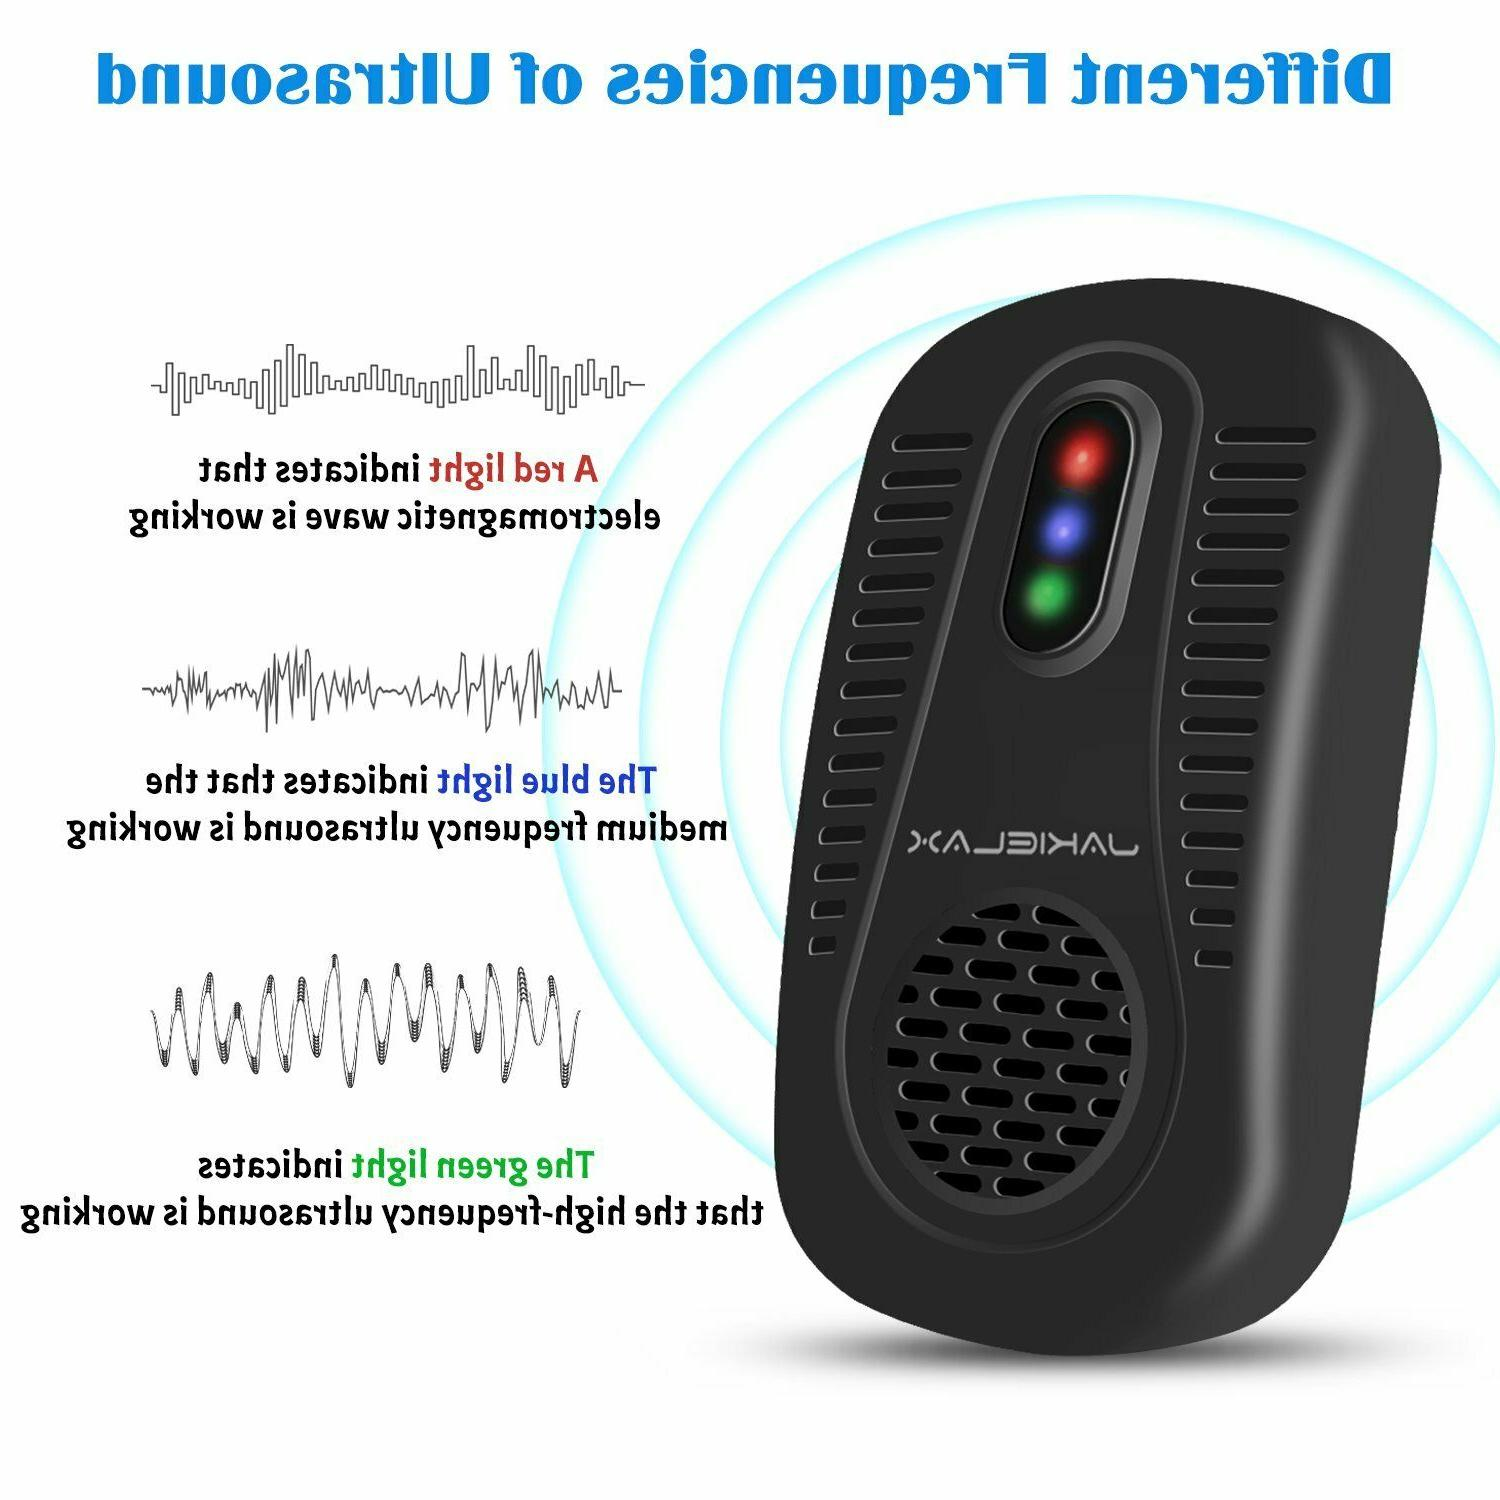 Set of Ultrasonic Waterproof Indoor Pest Repellent Bugs Chaser